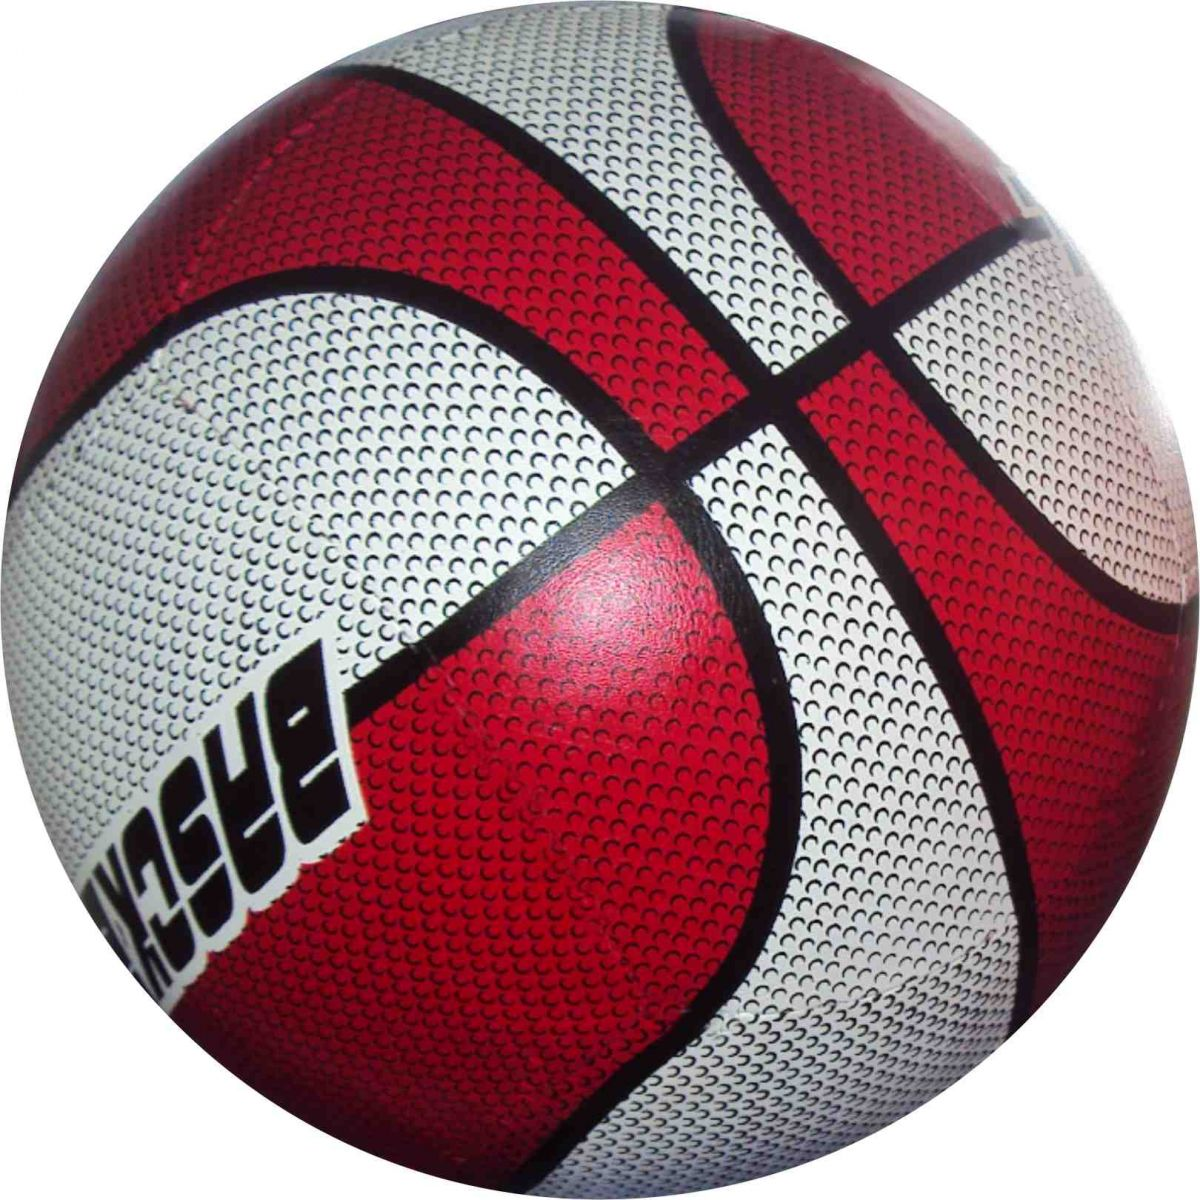 Mini Bola de basquete Eva  - Super Tri Shop - Bolas - Utilidades - Presentes